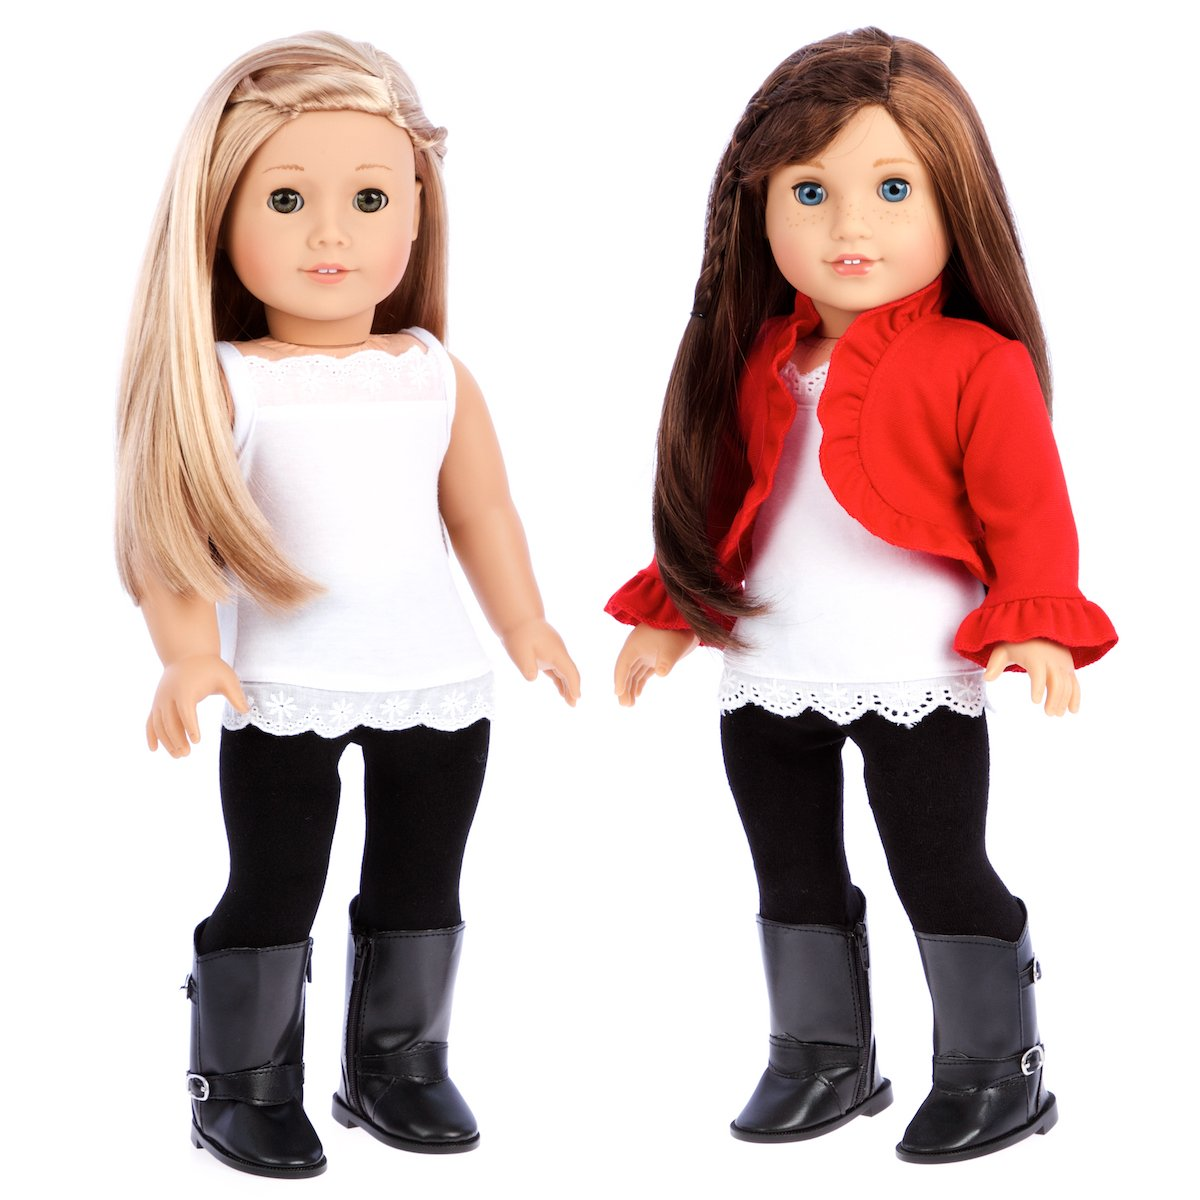 Uptown Girl - 4 piece outfit includes red ruffled jacket, white tank top, black leggings and boots - 18 inch Doll Clothes (doll not included) DreamWorld Collections DWC-1227